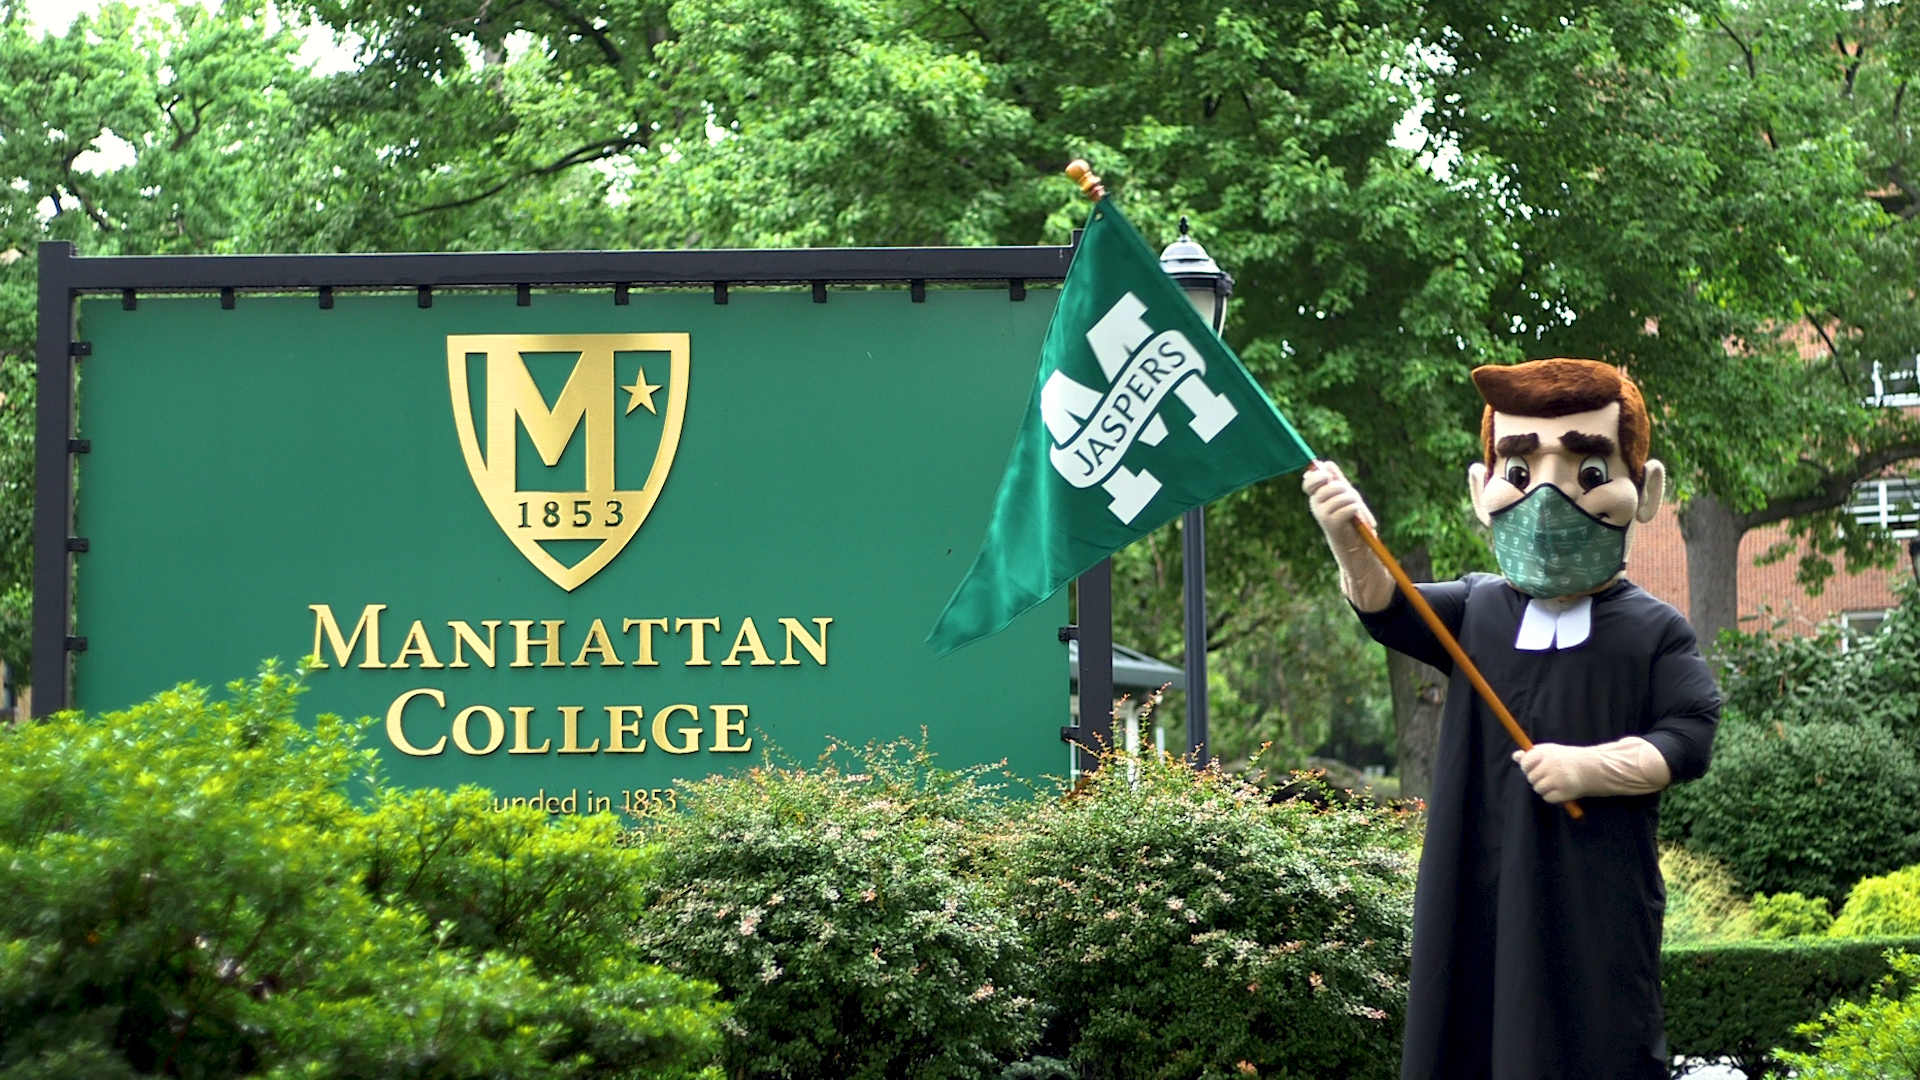 Photograph of Brother Jasper mascot standing in front of Manhattan College main entrance sign with a mask on.